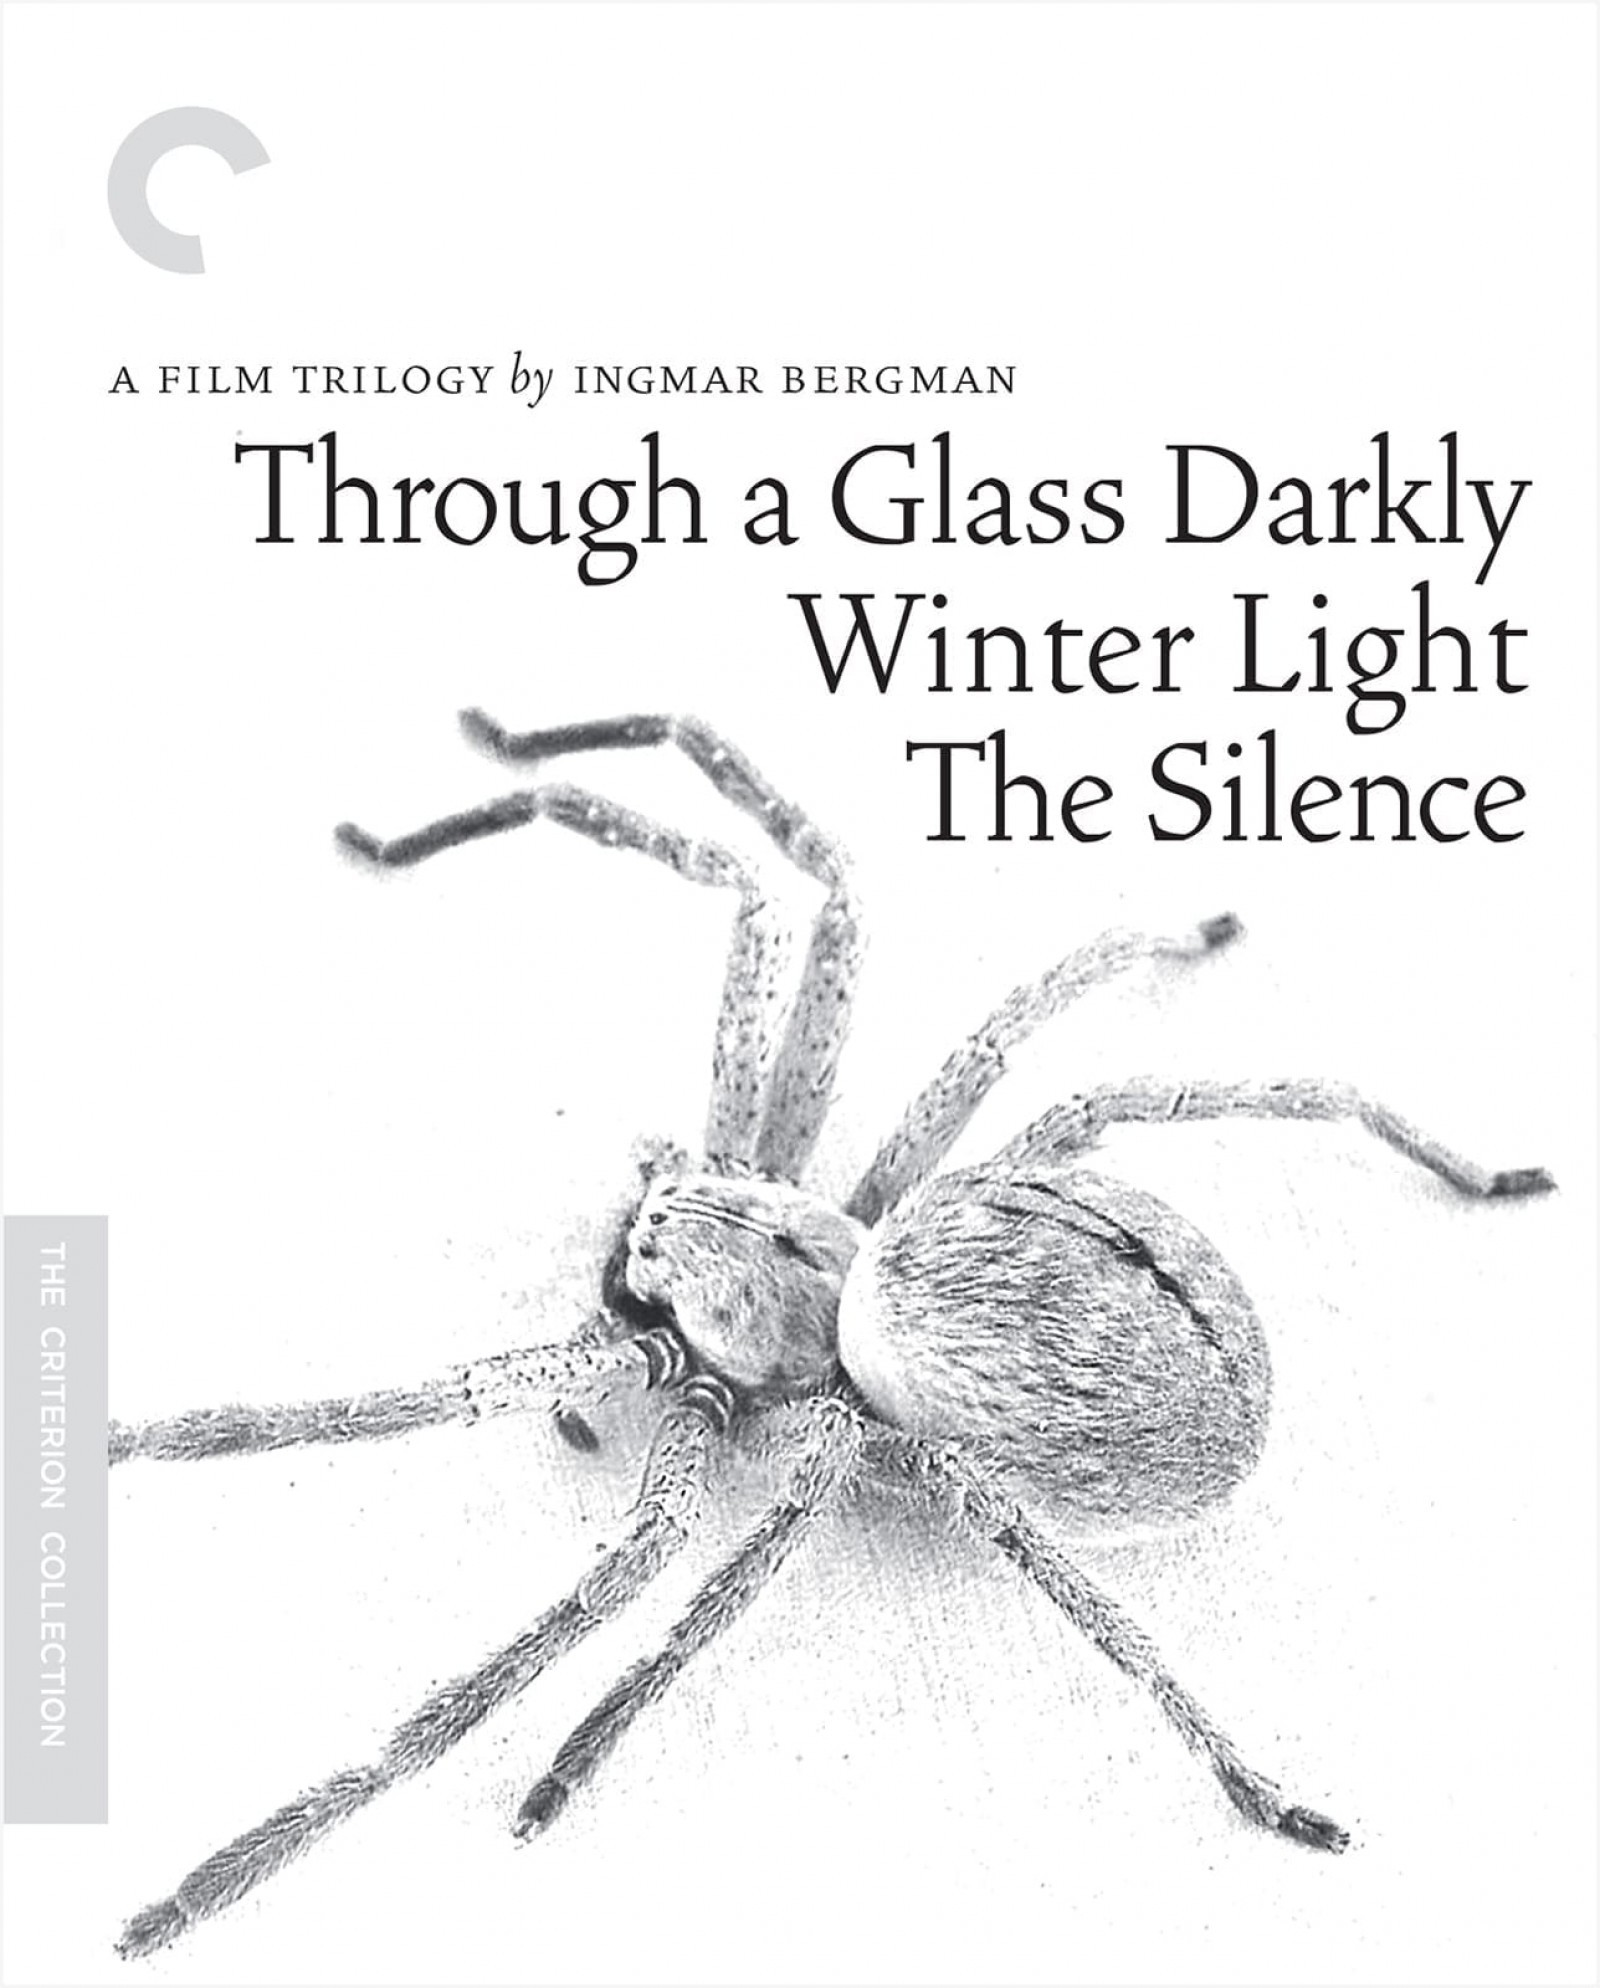 A Film Trilogy by Ingmar Bergman (The Criterion Collection)(Blu-ray)(Region A)(Pre-order / Jun 4)